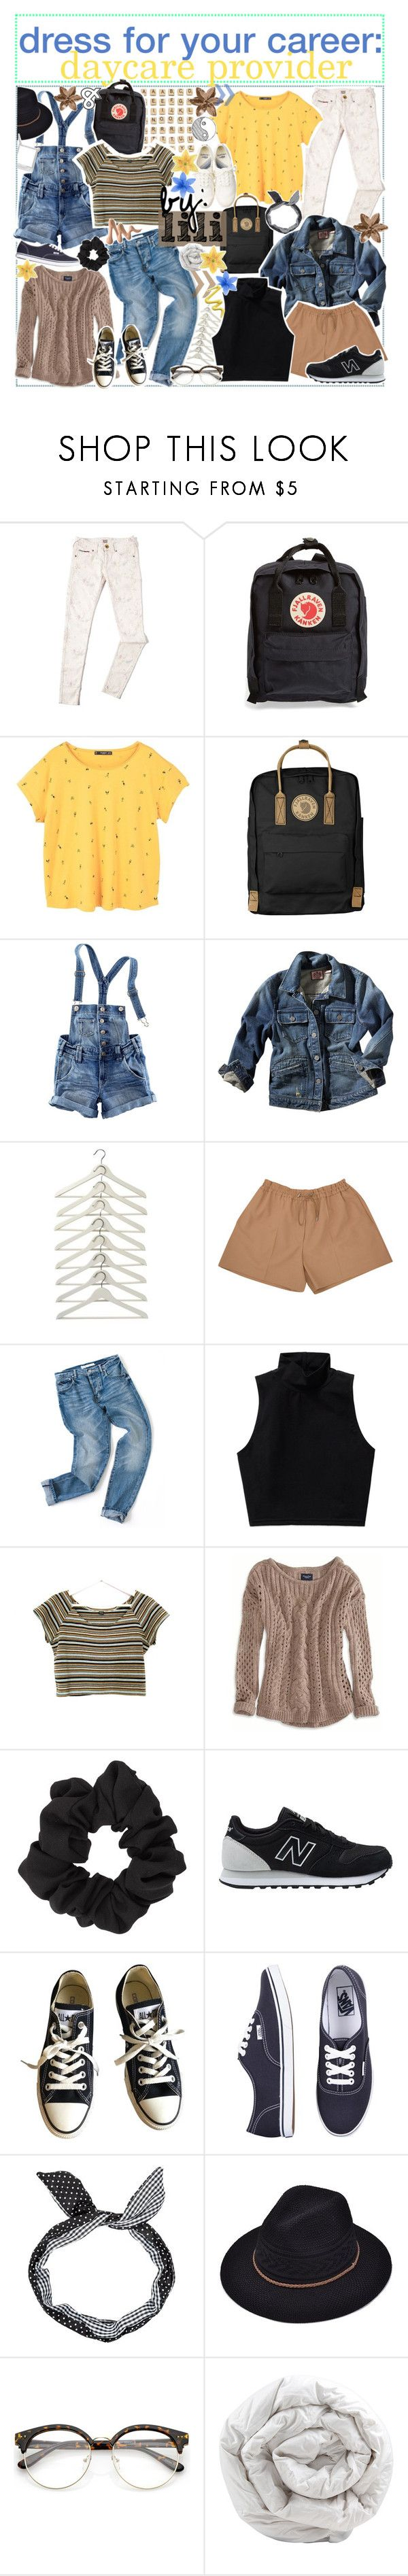 """""""dress for your career: daycare provider"""" by world-tips ❤ liked on Polyvore featuring Hasbro, Tommy Hilfiger, Fjällräven, MANGO, H&M, Juicy Couture, Acne Studios, Talula, American Eagle Outfitters and Miss Selfridge"""